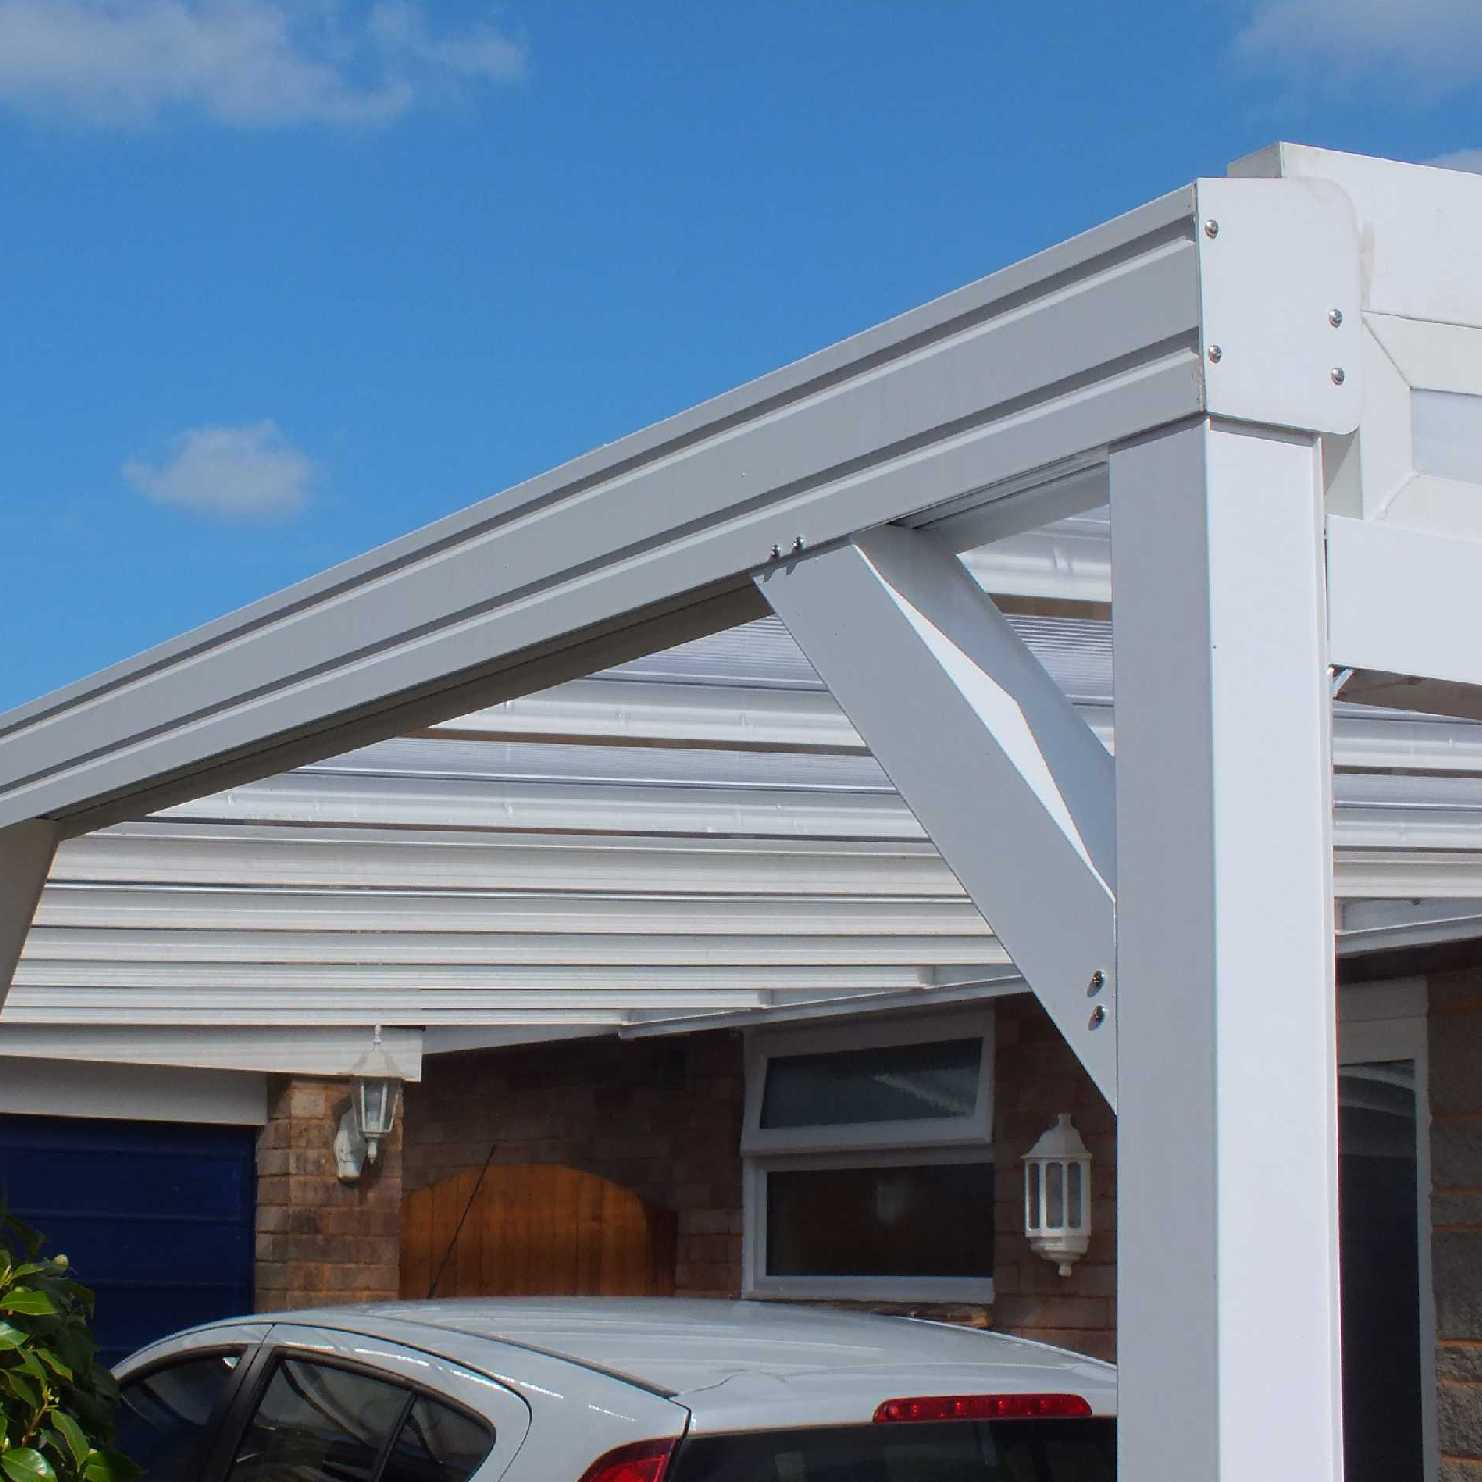 Buy Omega Smart Lean-To Canopy with 16mm Polycarbonate Glazing - 10.6m (W) x 2.5m (P), (5) Supporting Posts online today